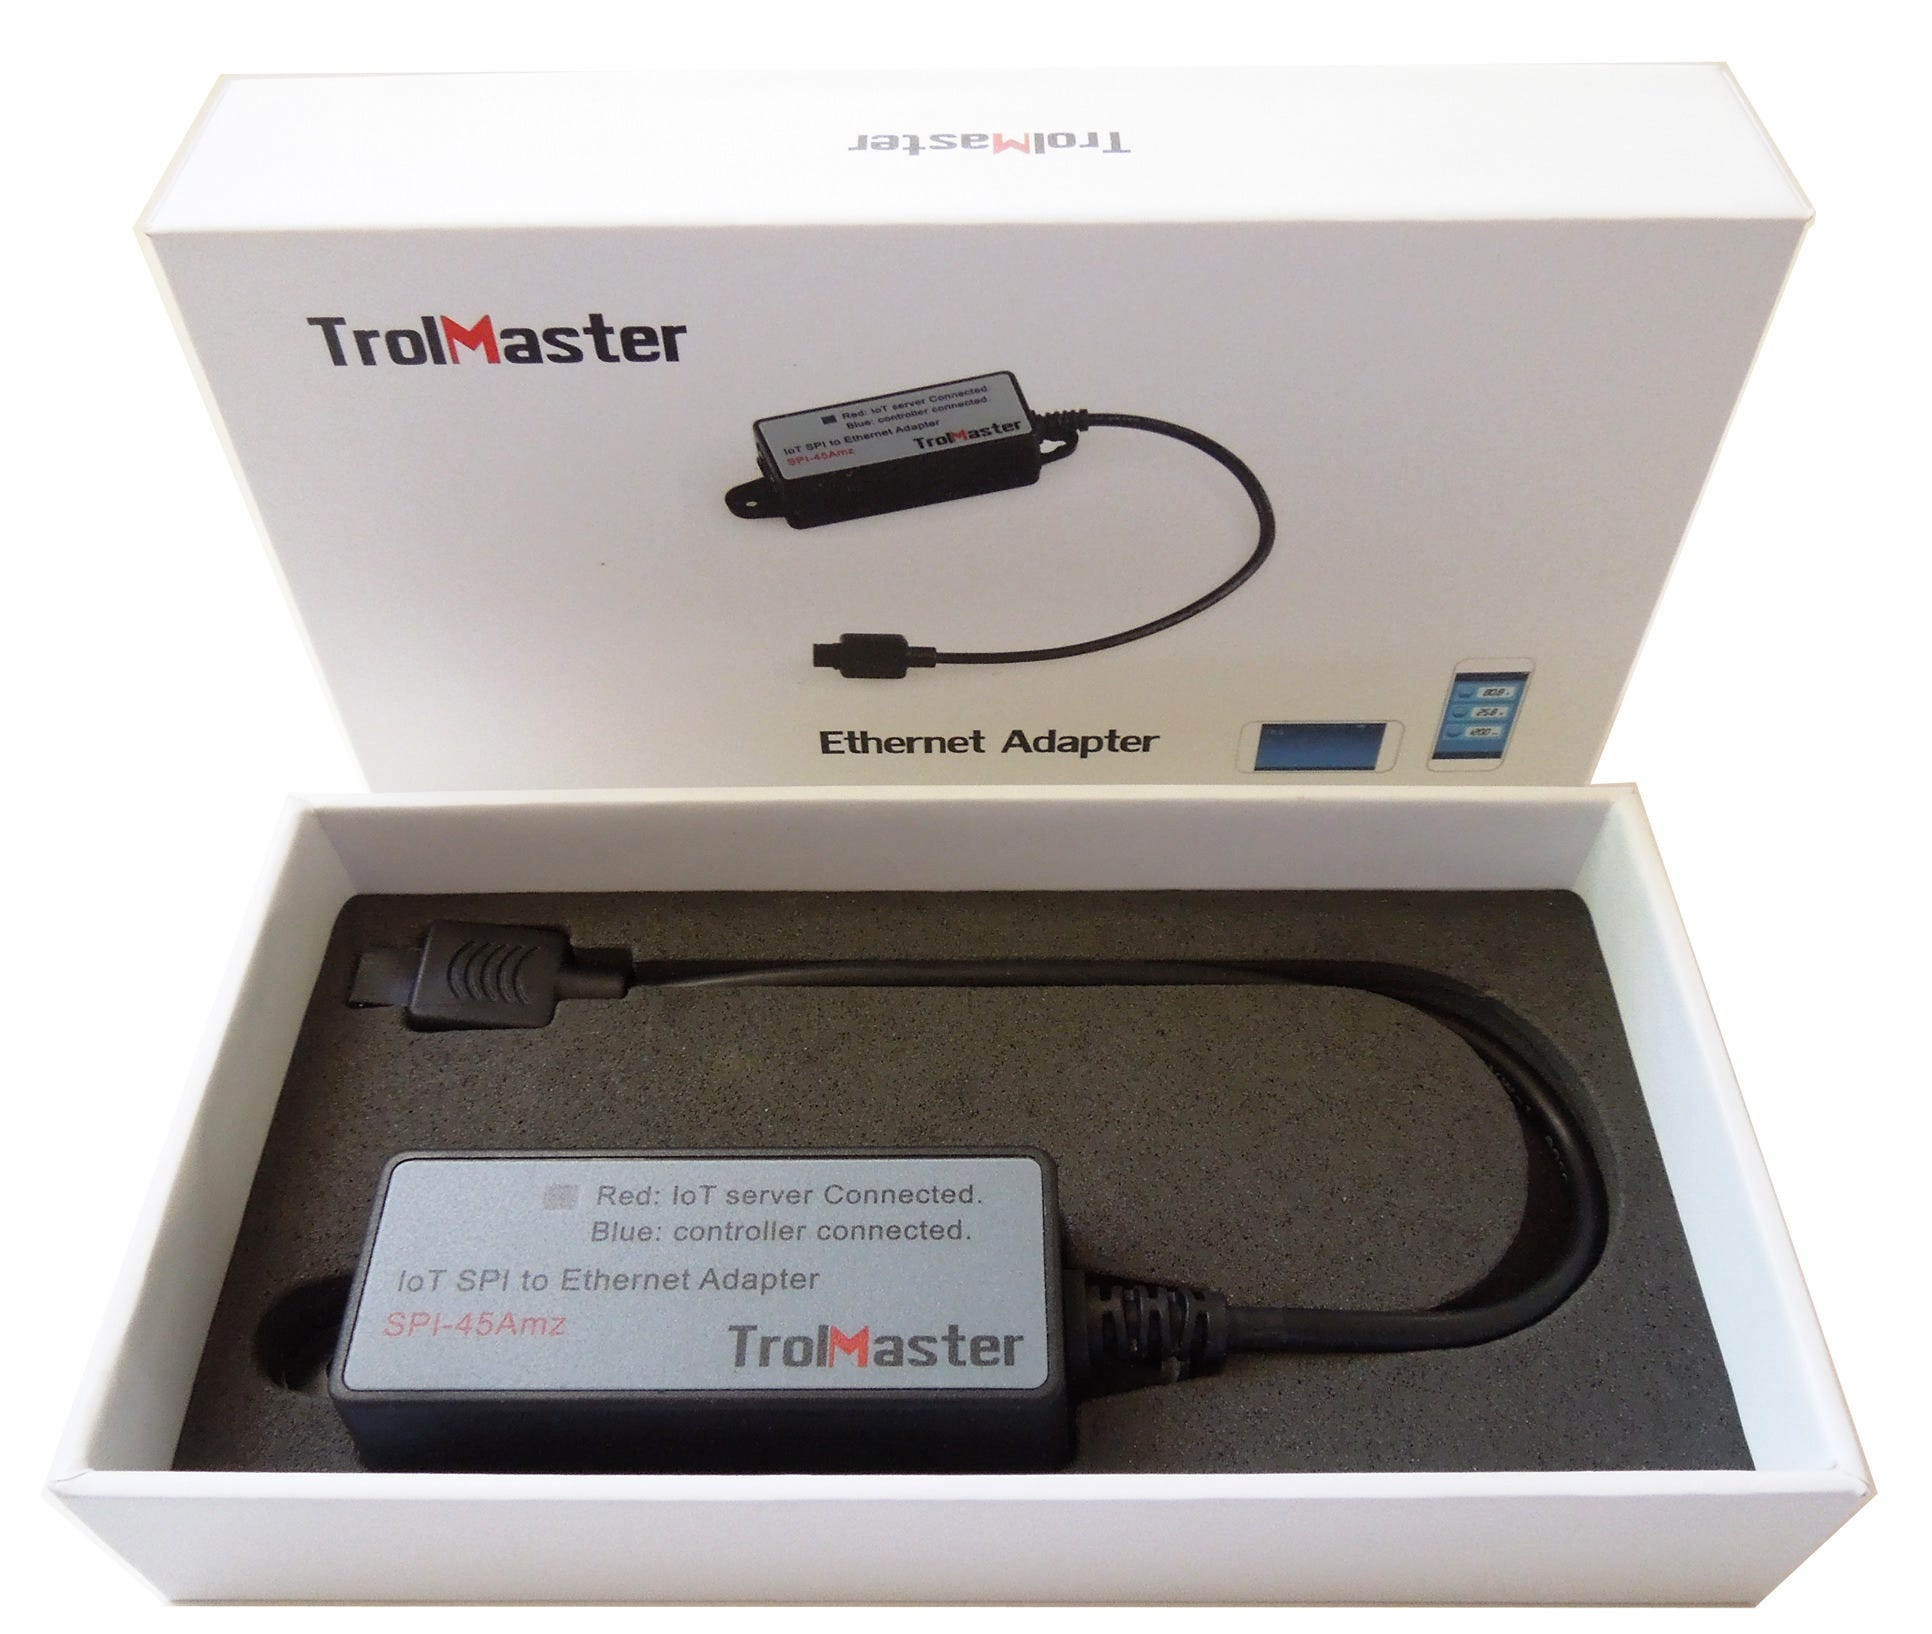 TrolMaster Ethernet Adapter *DISCONTINUED* This item has been discontinued, Please try our selection of Controller Accessories for an alternative. The TrolMaster Ethernet Adapterextends the range of the TrolMaster Hawkeye. It lets you connect to your TrolMaster Hawkeye controller through your Android or iOS phone or tablet. Using the app, you can monitor the environment of your grow room anytime and anywhere and have warnings sent to your phone if the growing environment exceeds your maximum or minimum set points.